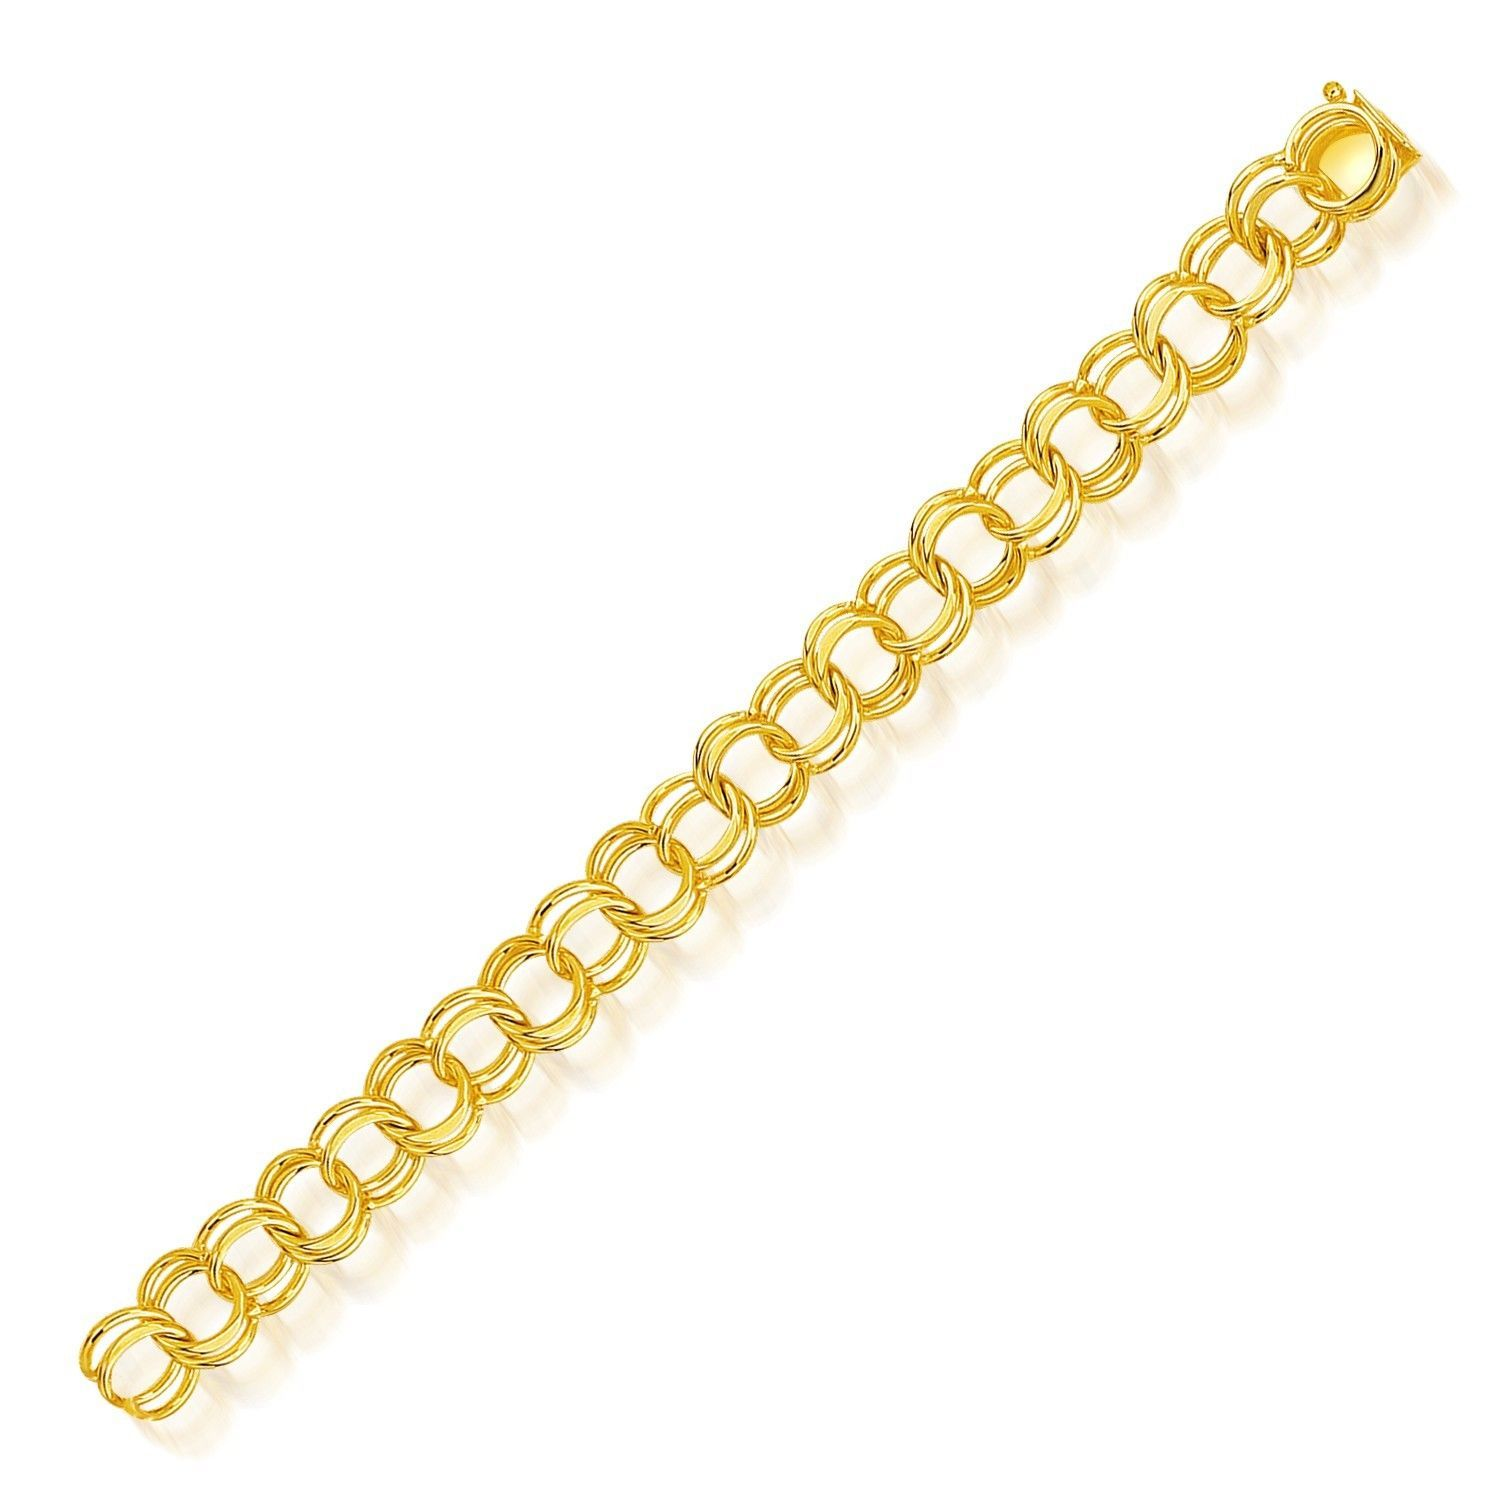 14k Yellow Gold Solid Double Link Charm Bracelet 10.0mm